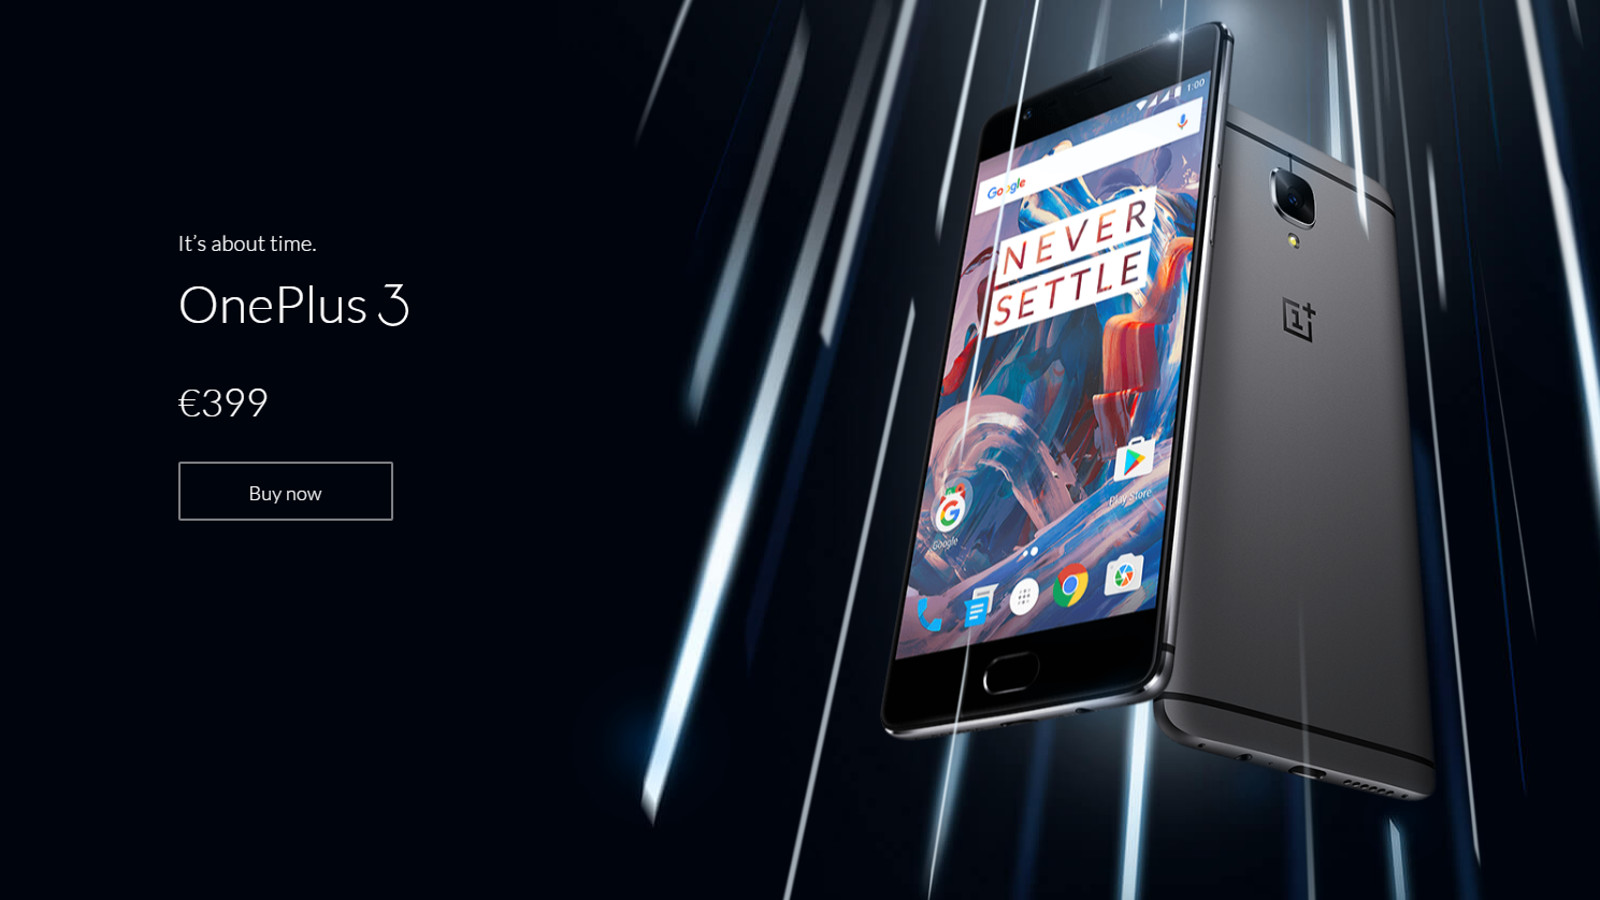 oneplus 3 featured